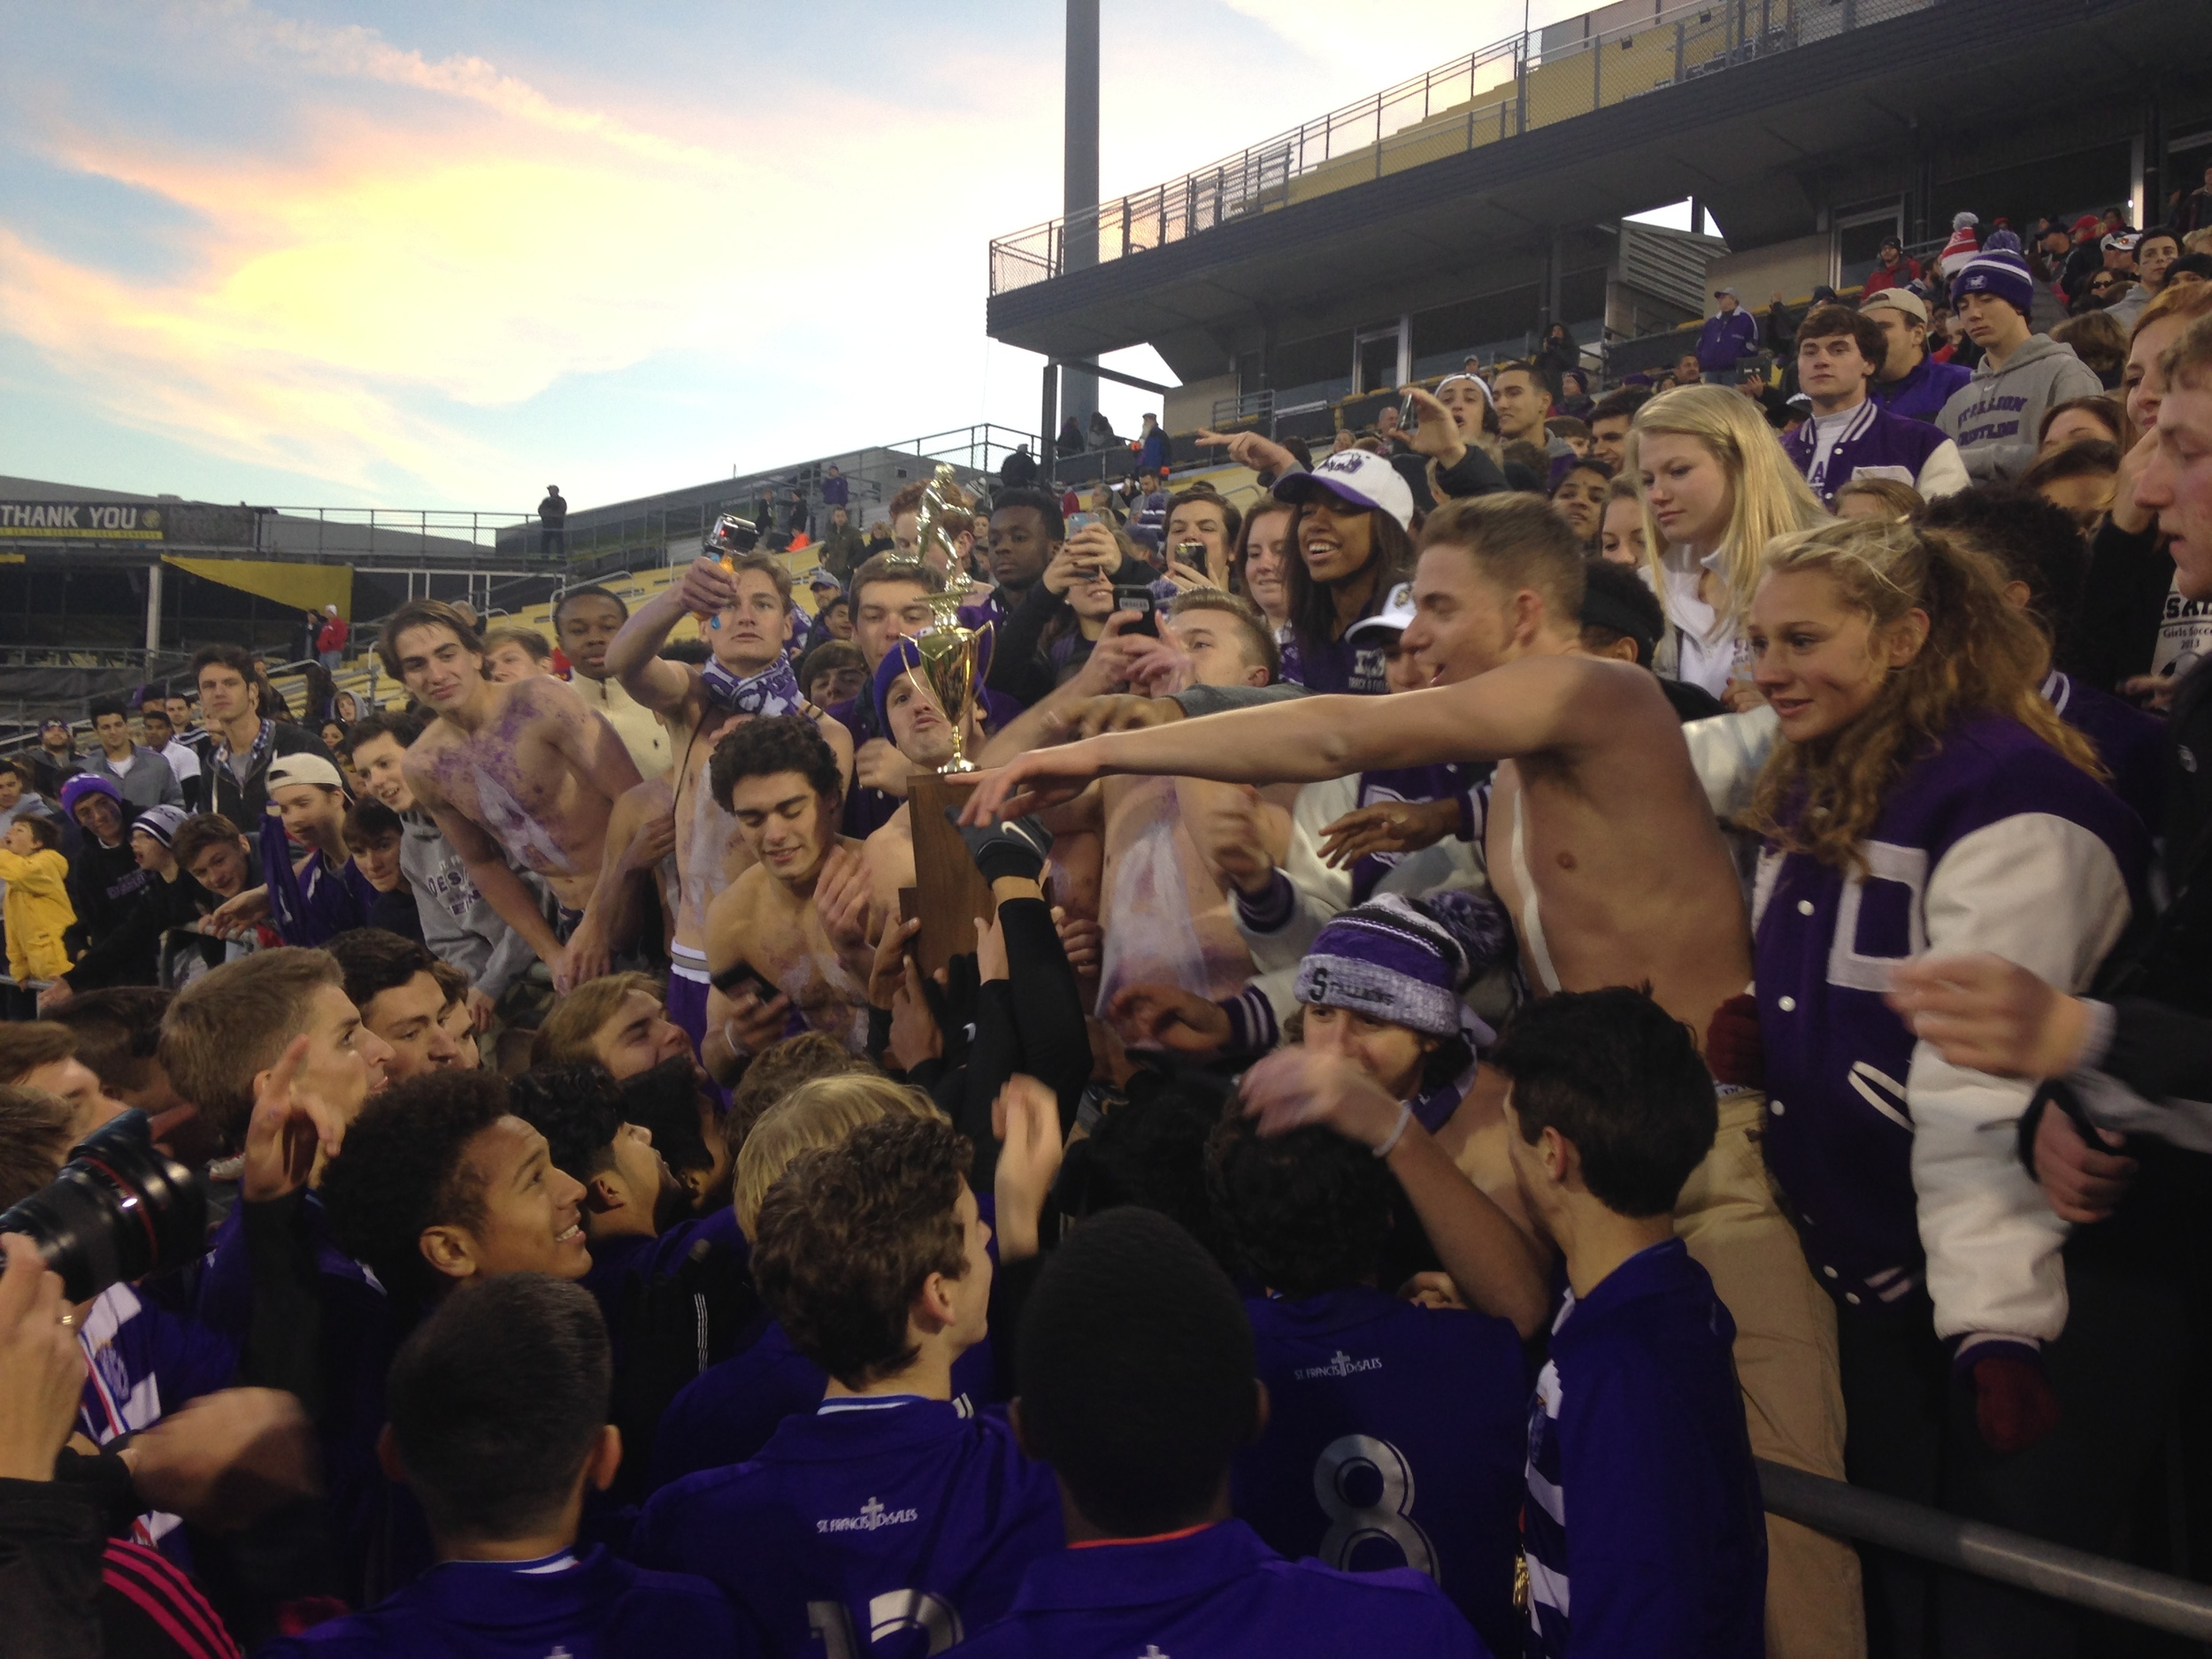 Post-game celebration with the student section